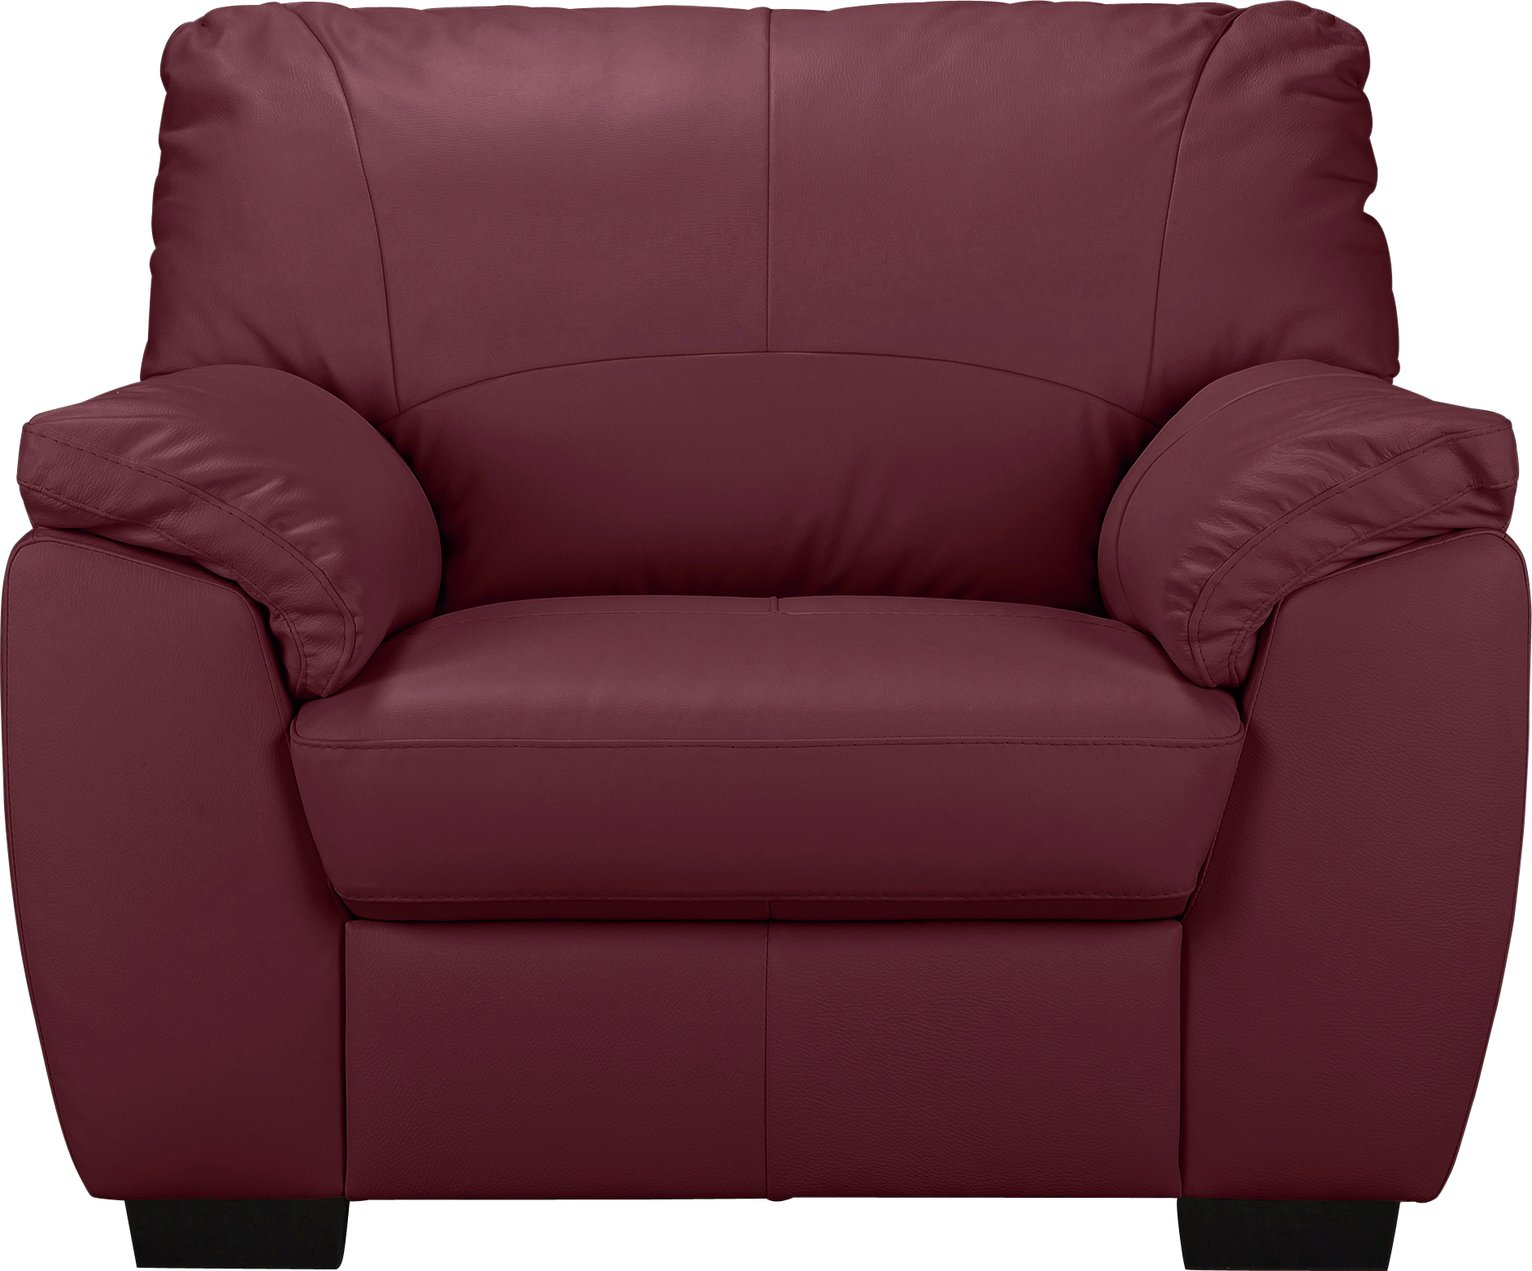 Argos Home Milano Leather Chair - Burgandy